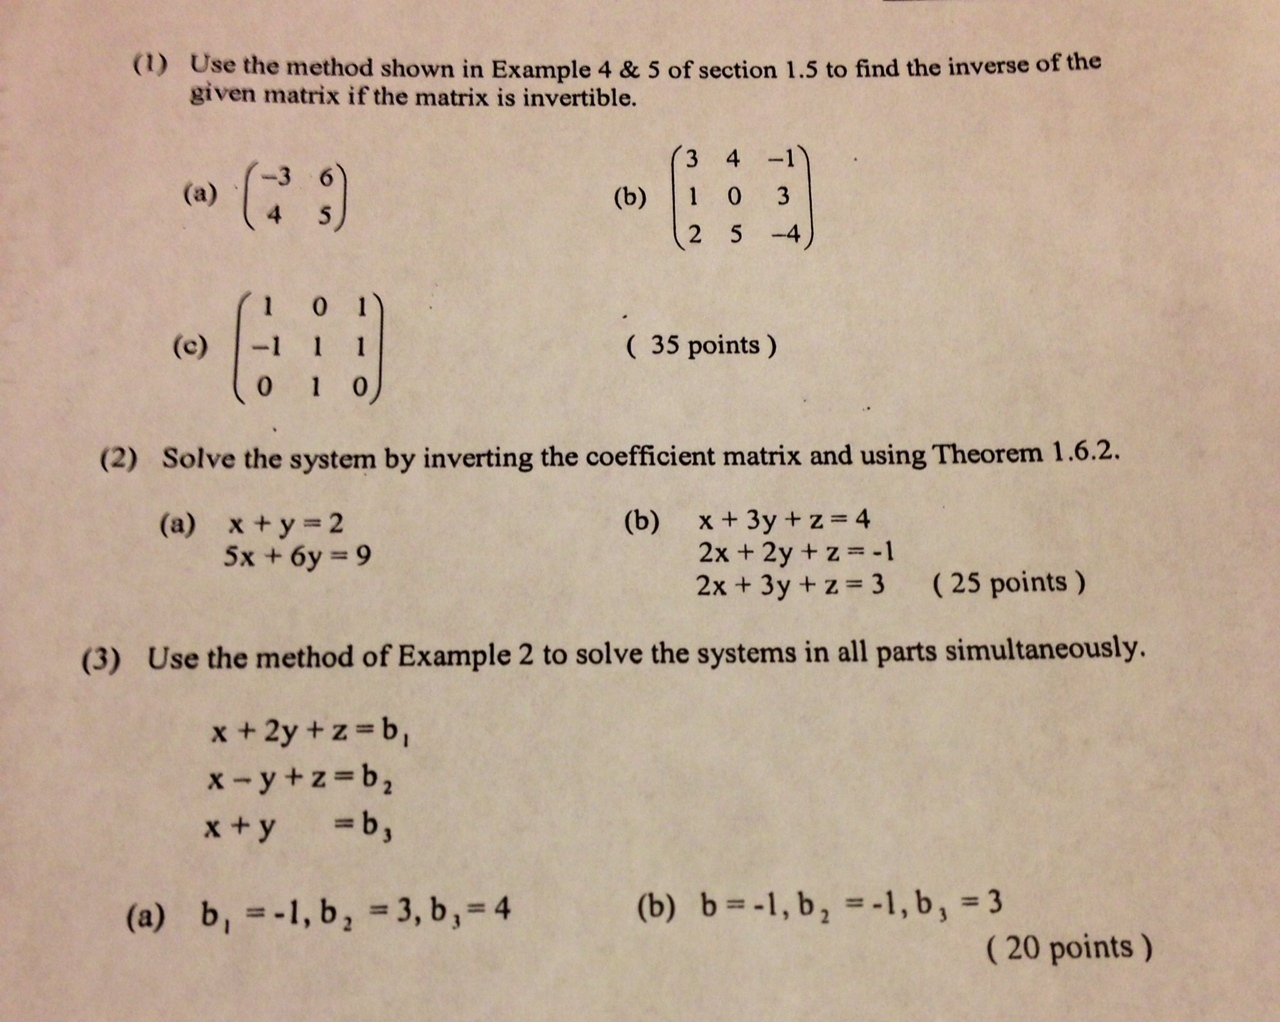 I need help with my math homework